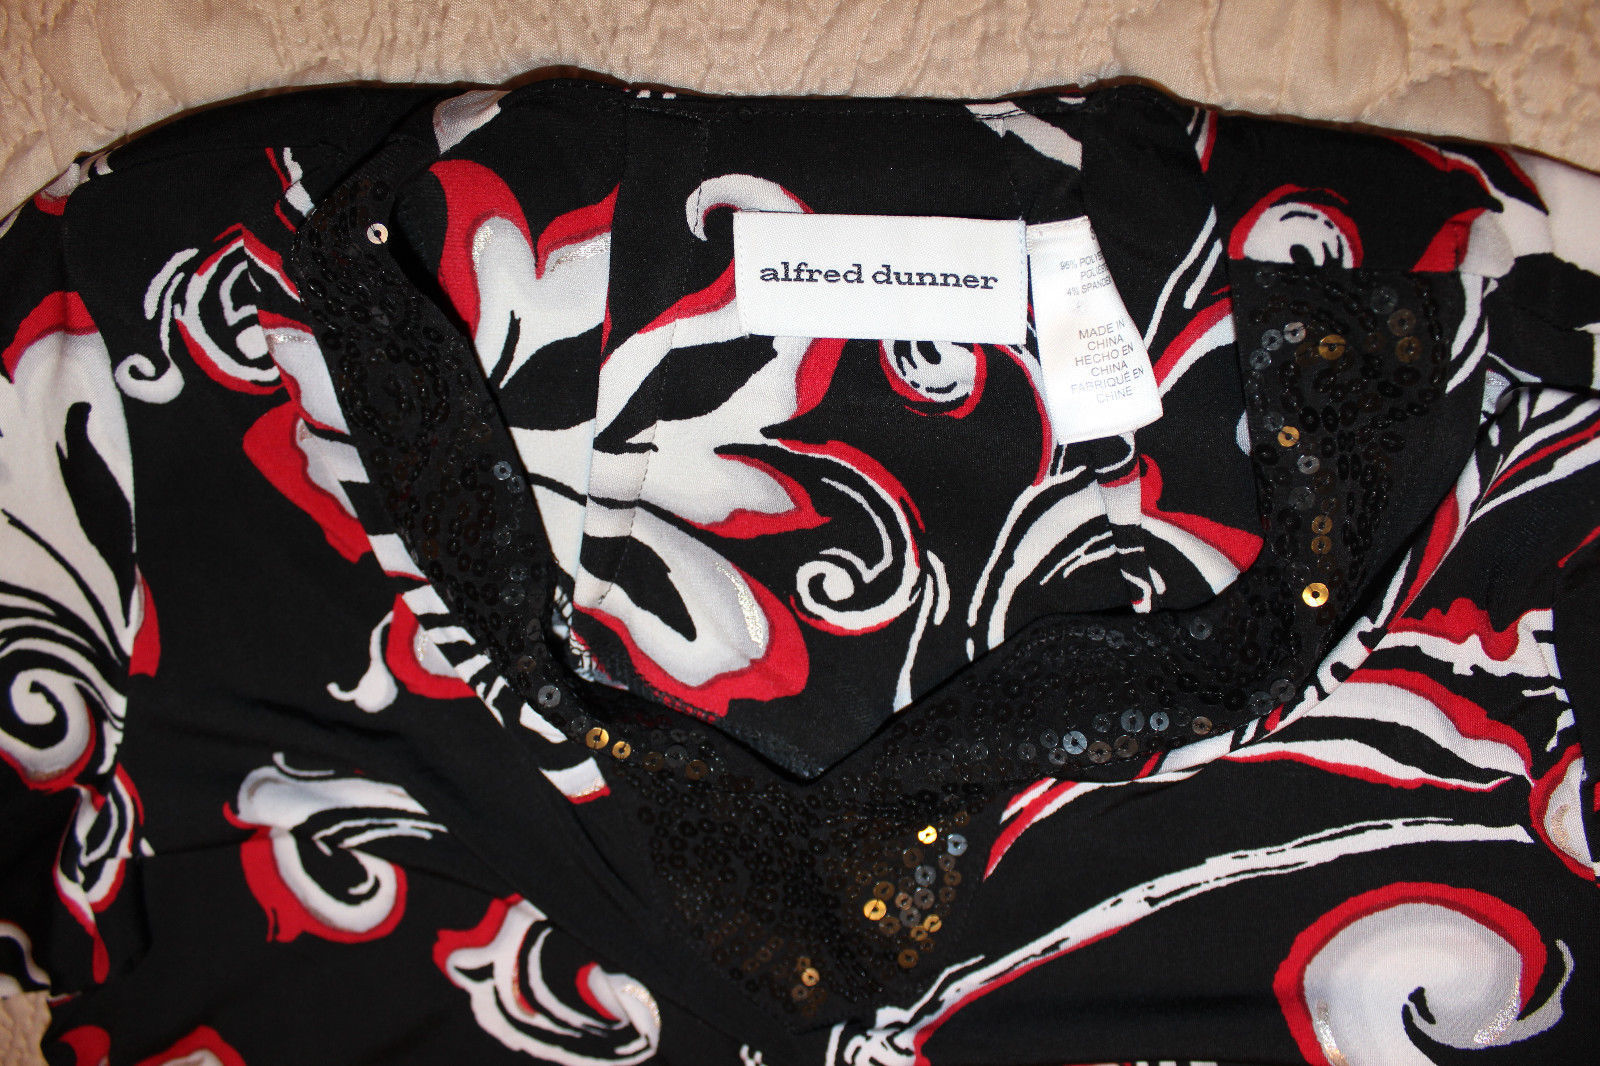 BEAUTIFUL 3/4 SLEEVE BLACK WHITE RED FLOWING TOP BLOUSE SEQUINS NECK S M image 4